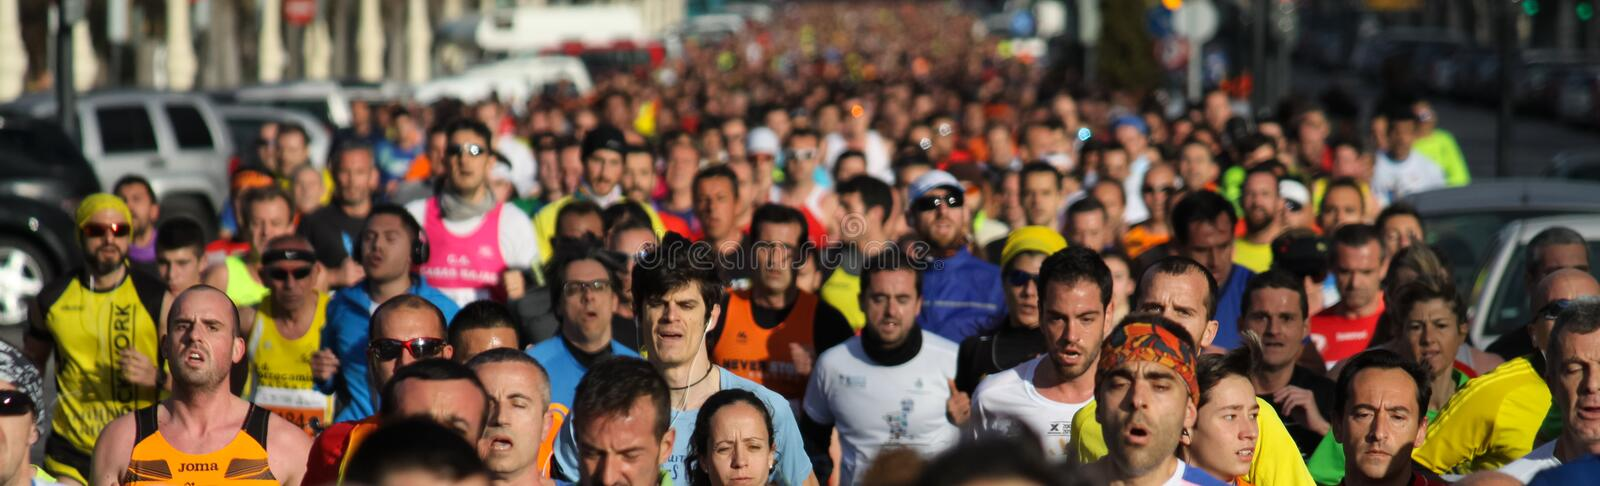 5K Run. VALENCIA, SPAIN - FEBRUARY 22, 2015: Runners compete in the IV University of Valencia 5K run in the streets of Valencia stock photo